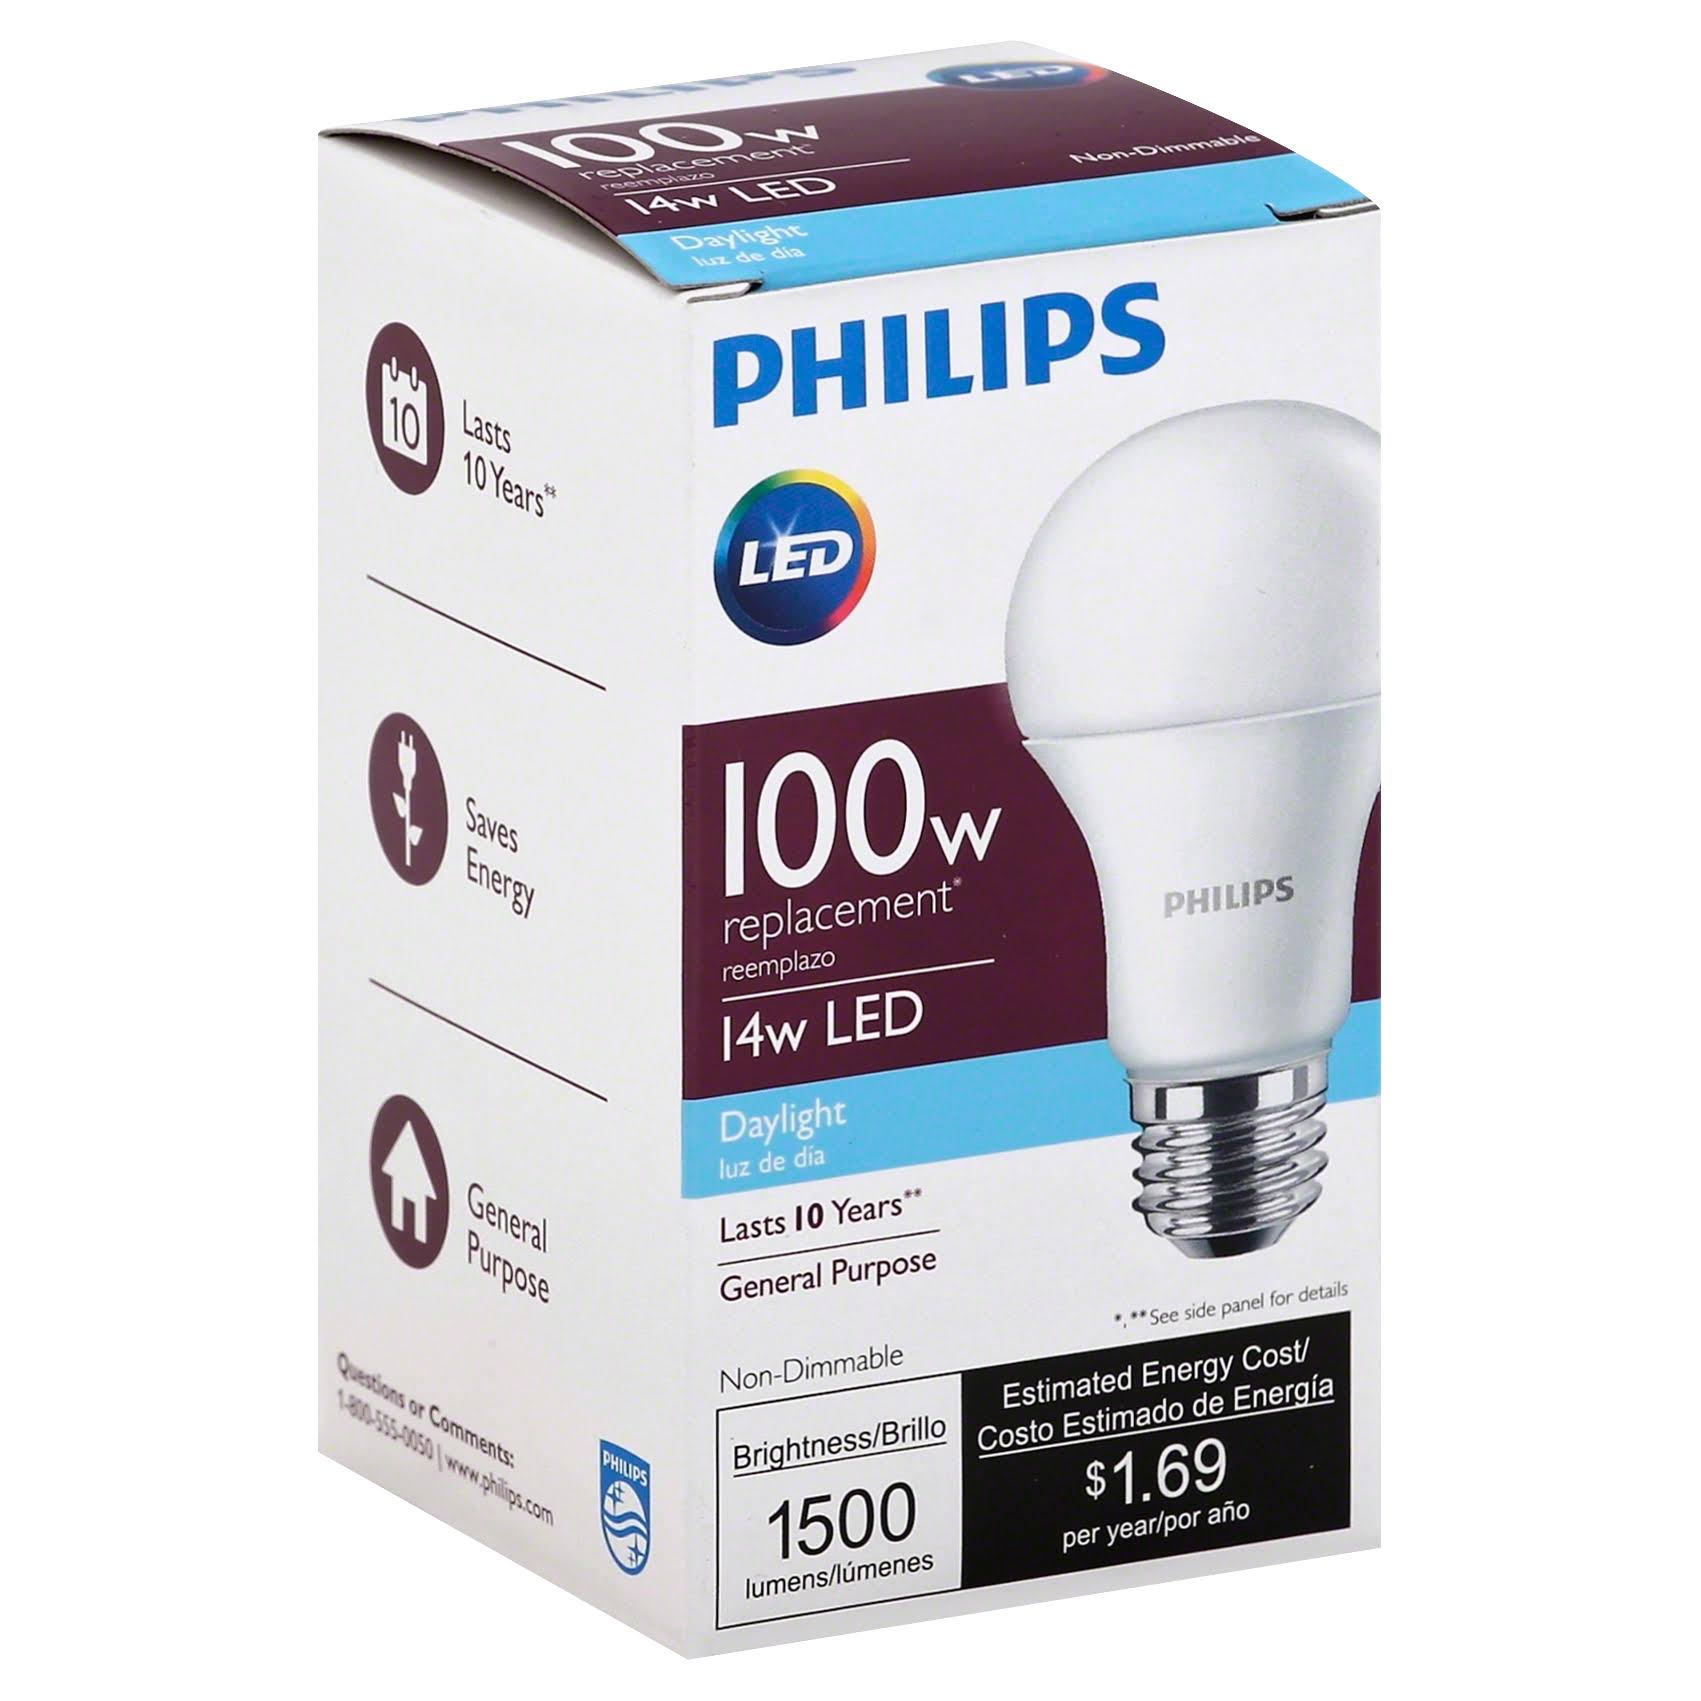 Philips 455717 Equivalent A19 LED Daylight Light Bulb - 100W, 4pk